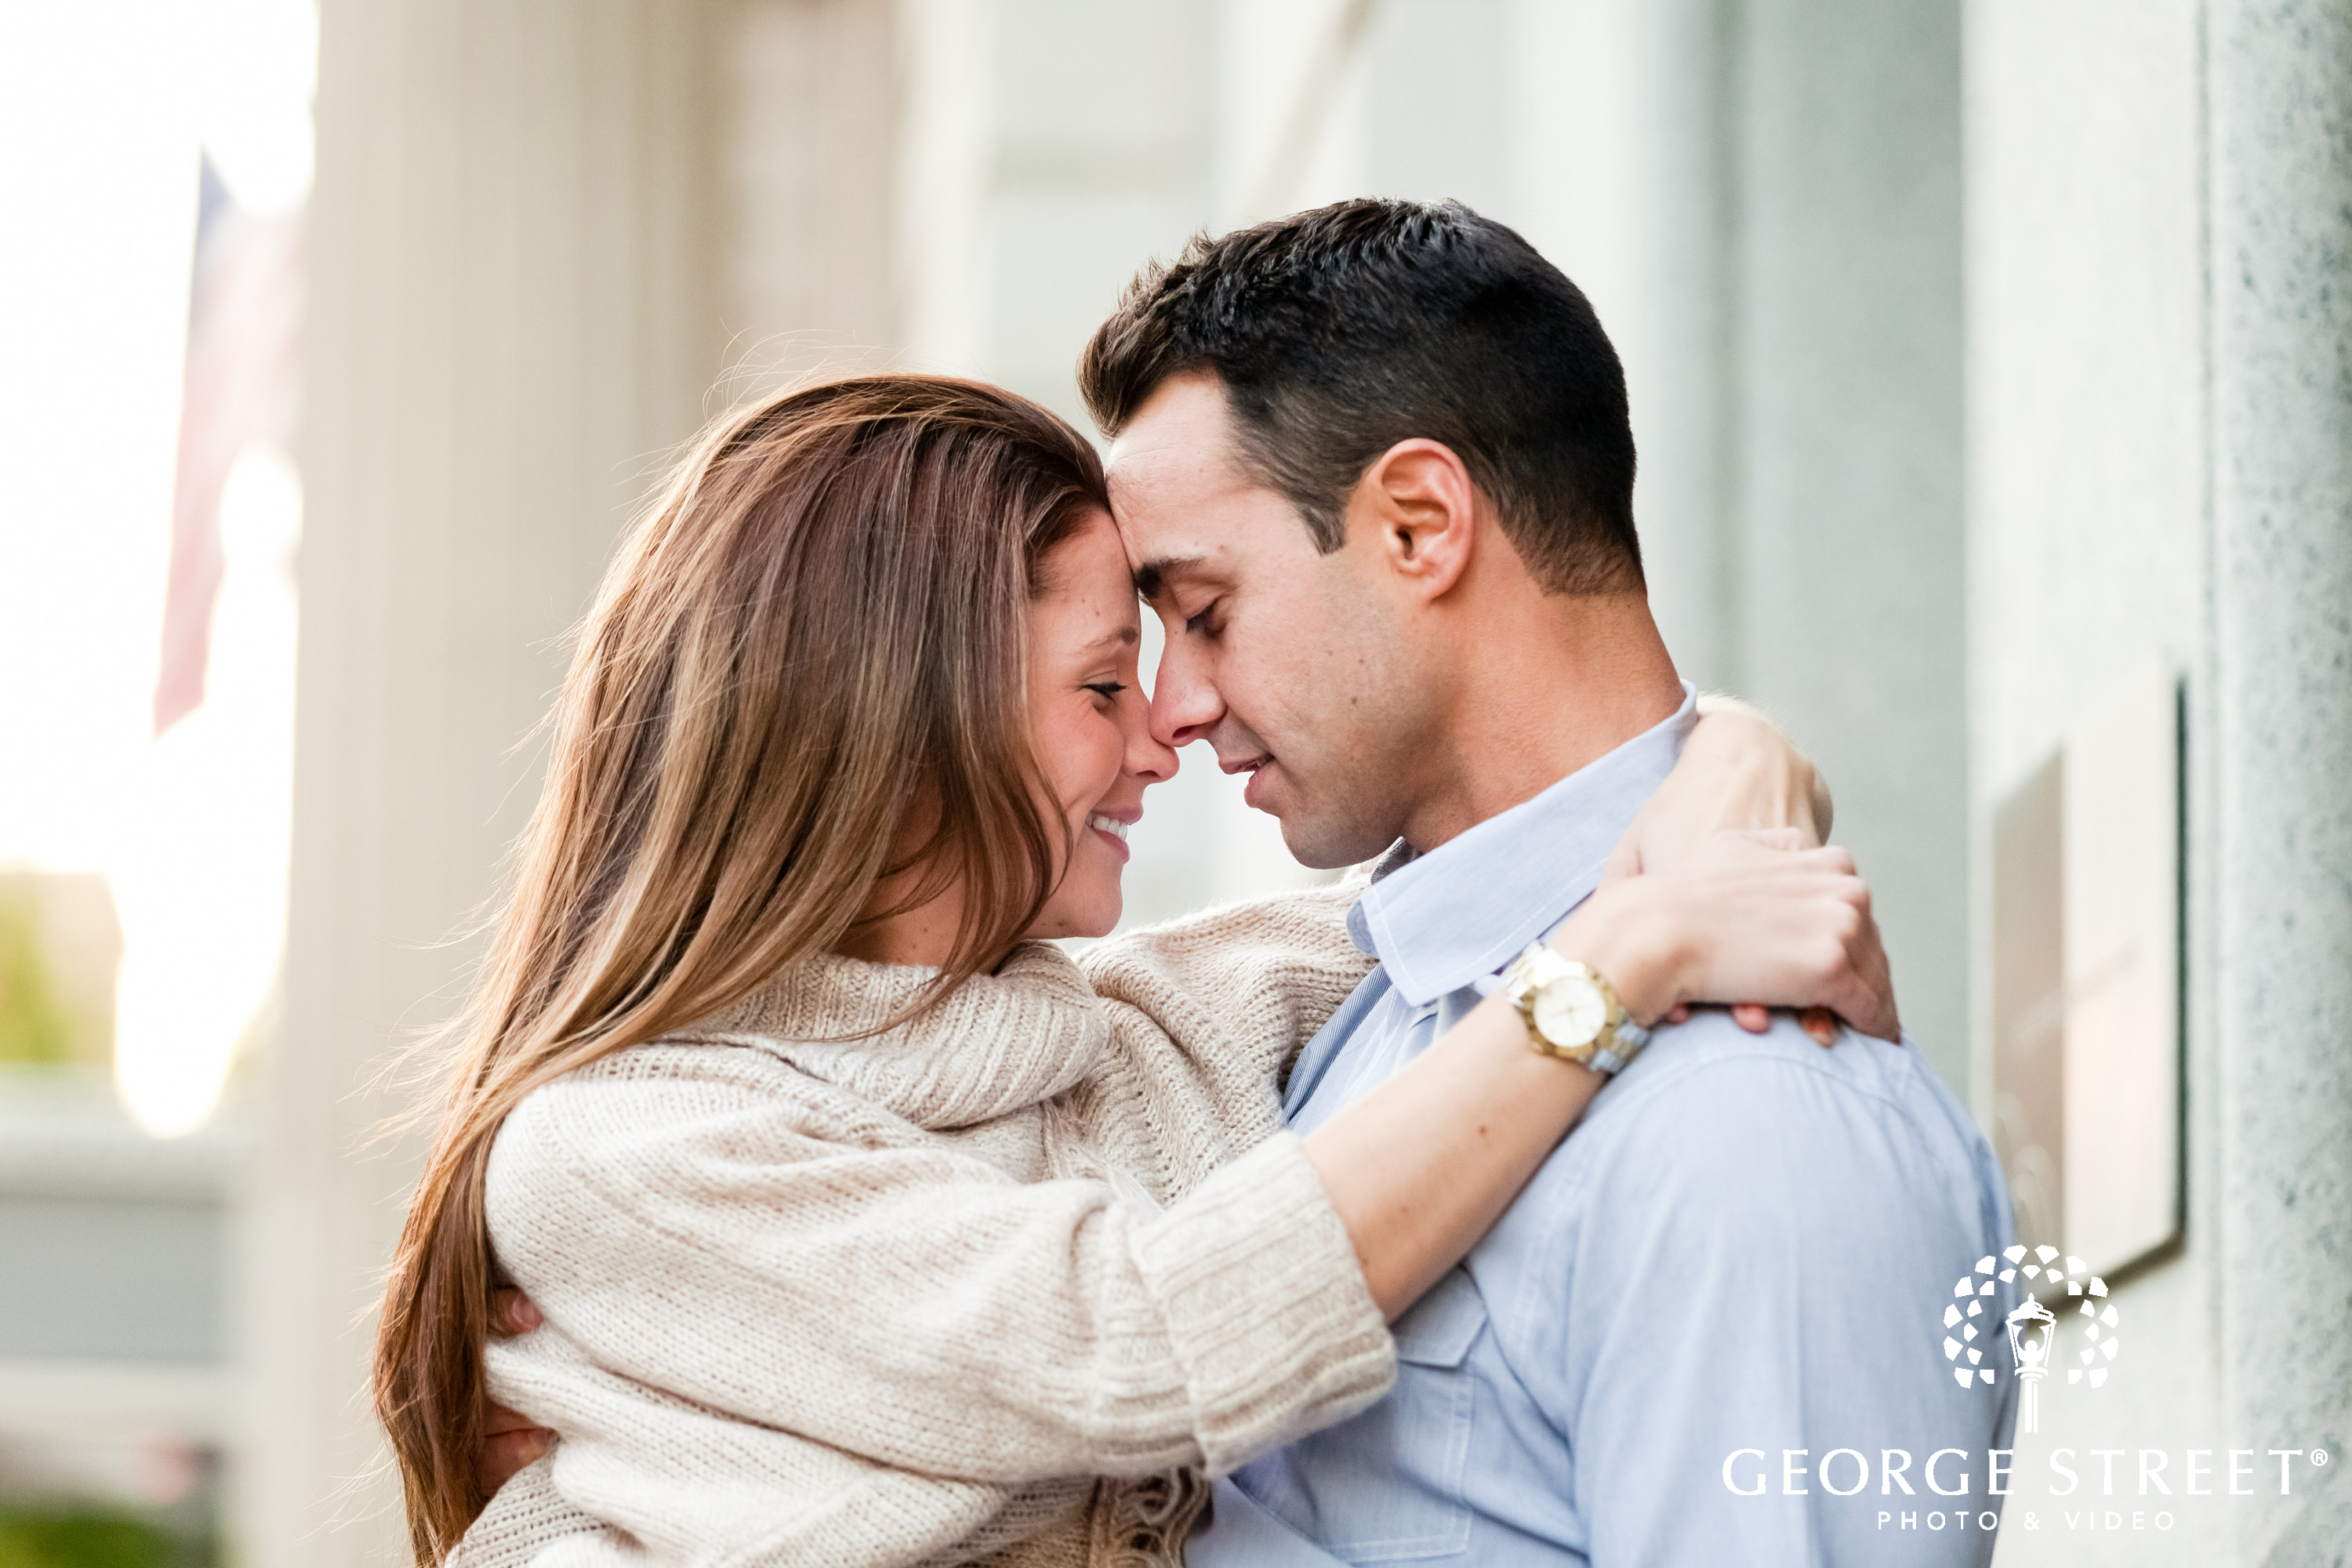 engagment session in love photo